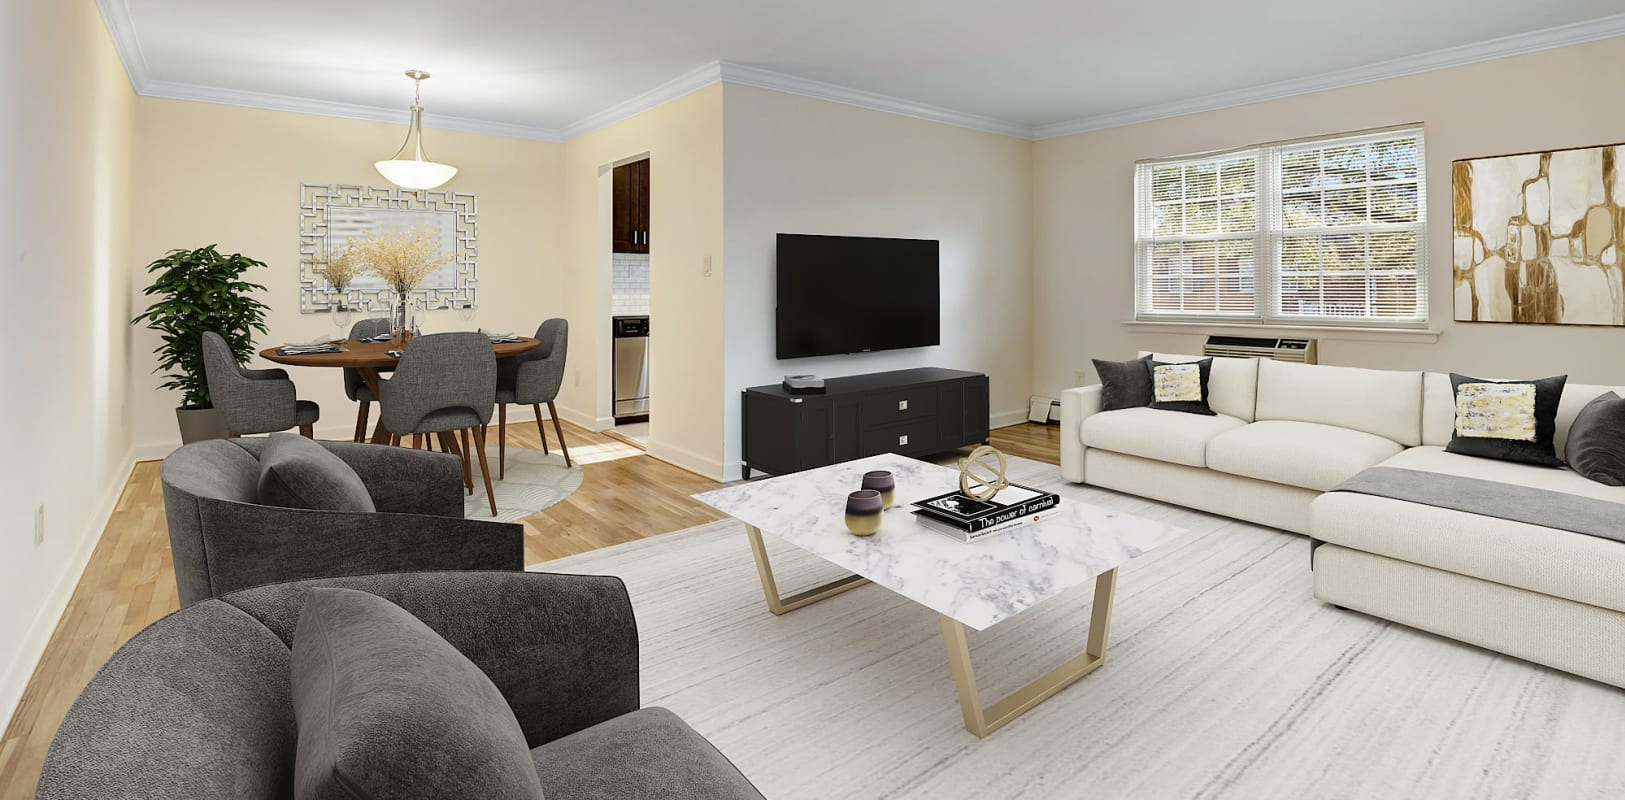 Large living room with easy entrance into the dining room at Park Lane Apartments in Little Falls, New Jersey